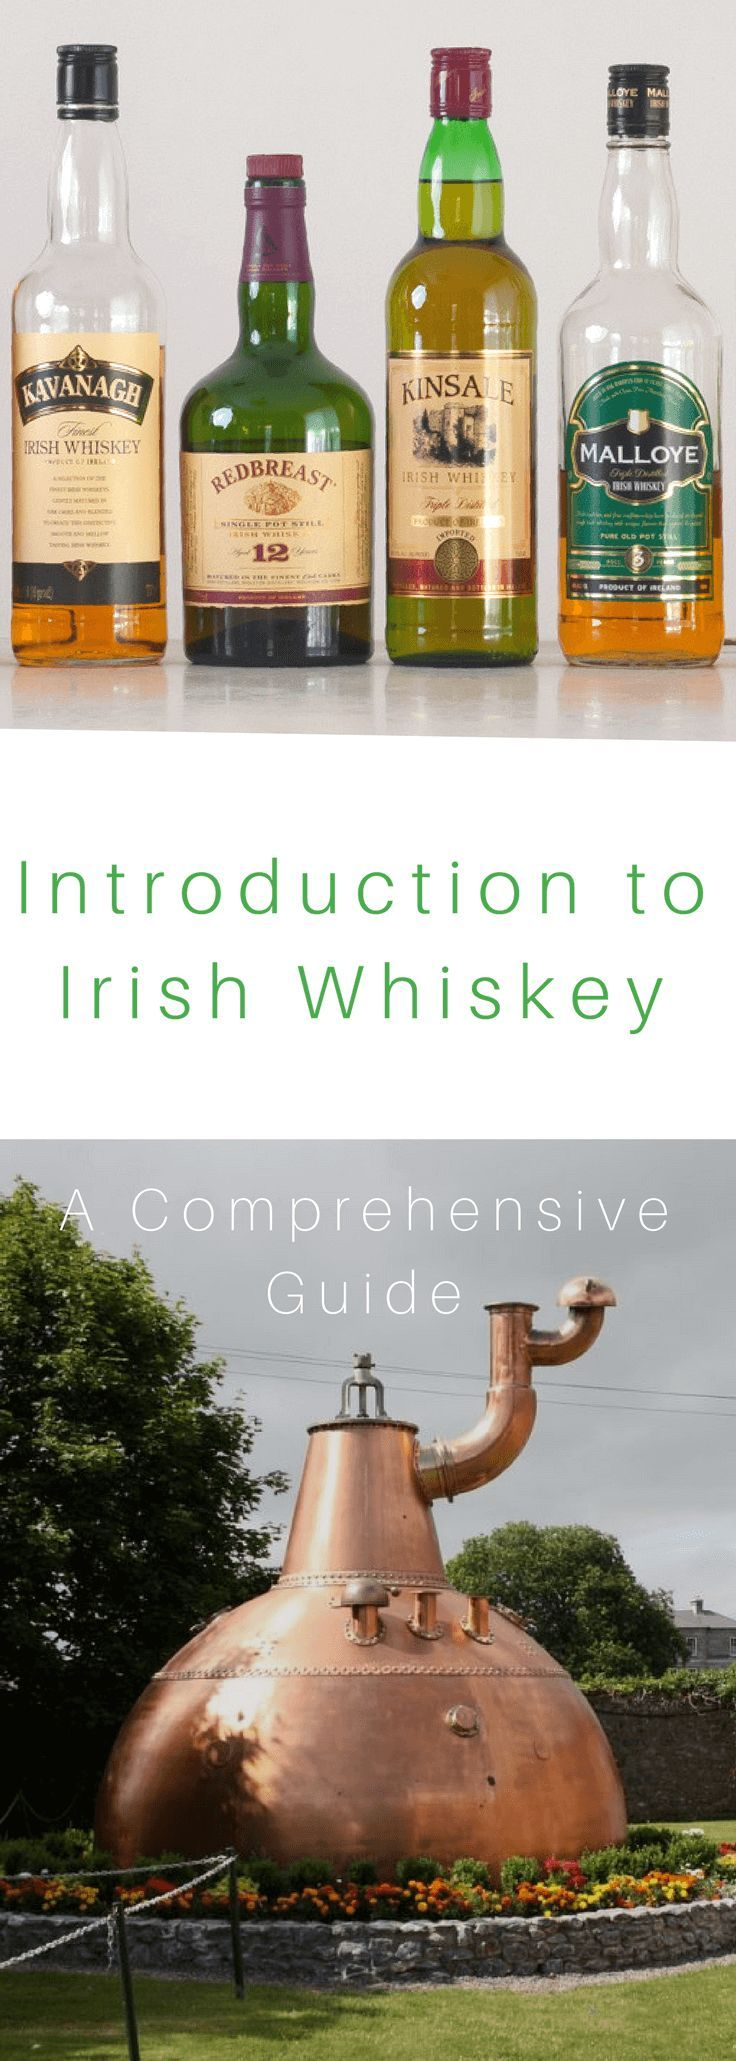 Introduction To Irish Whiskey - A Comprehensive Guide